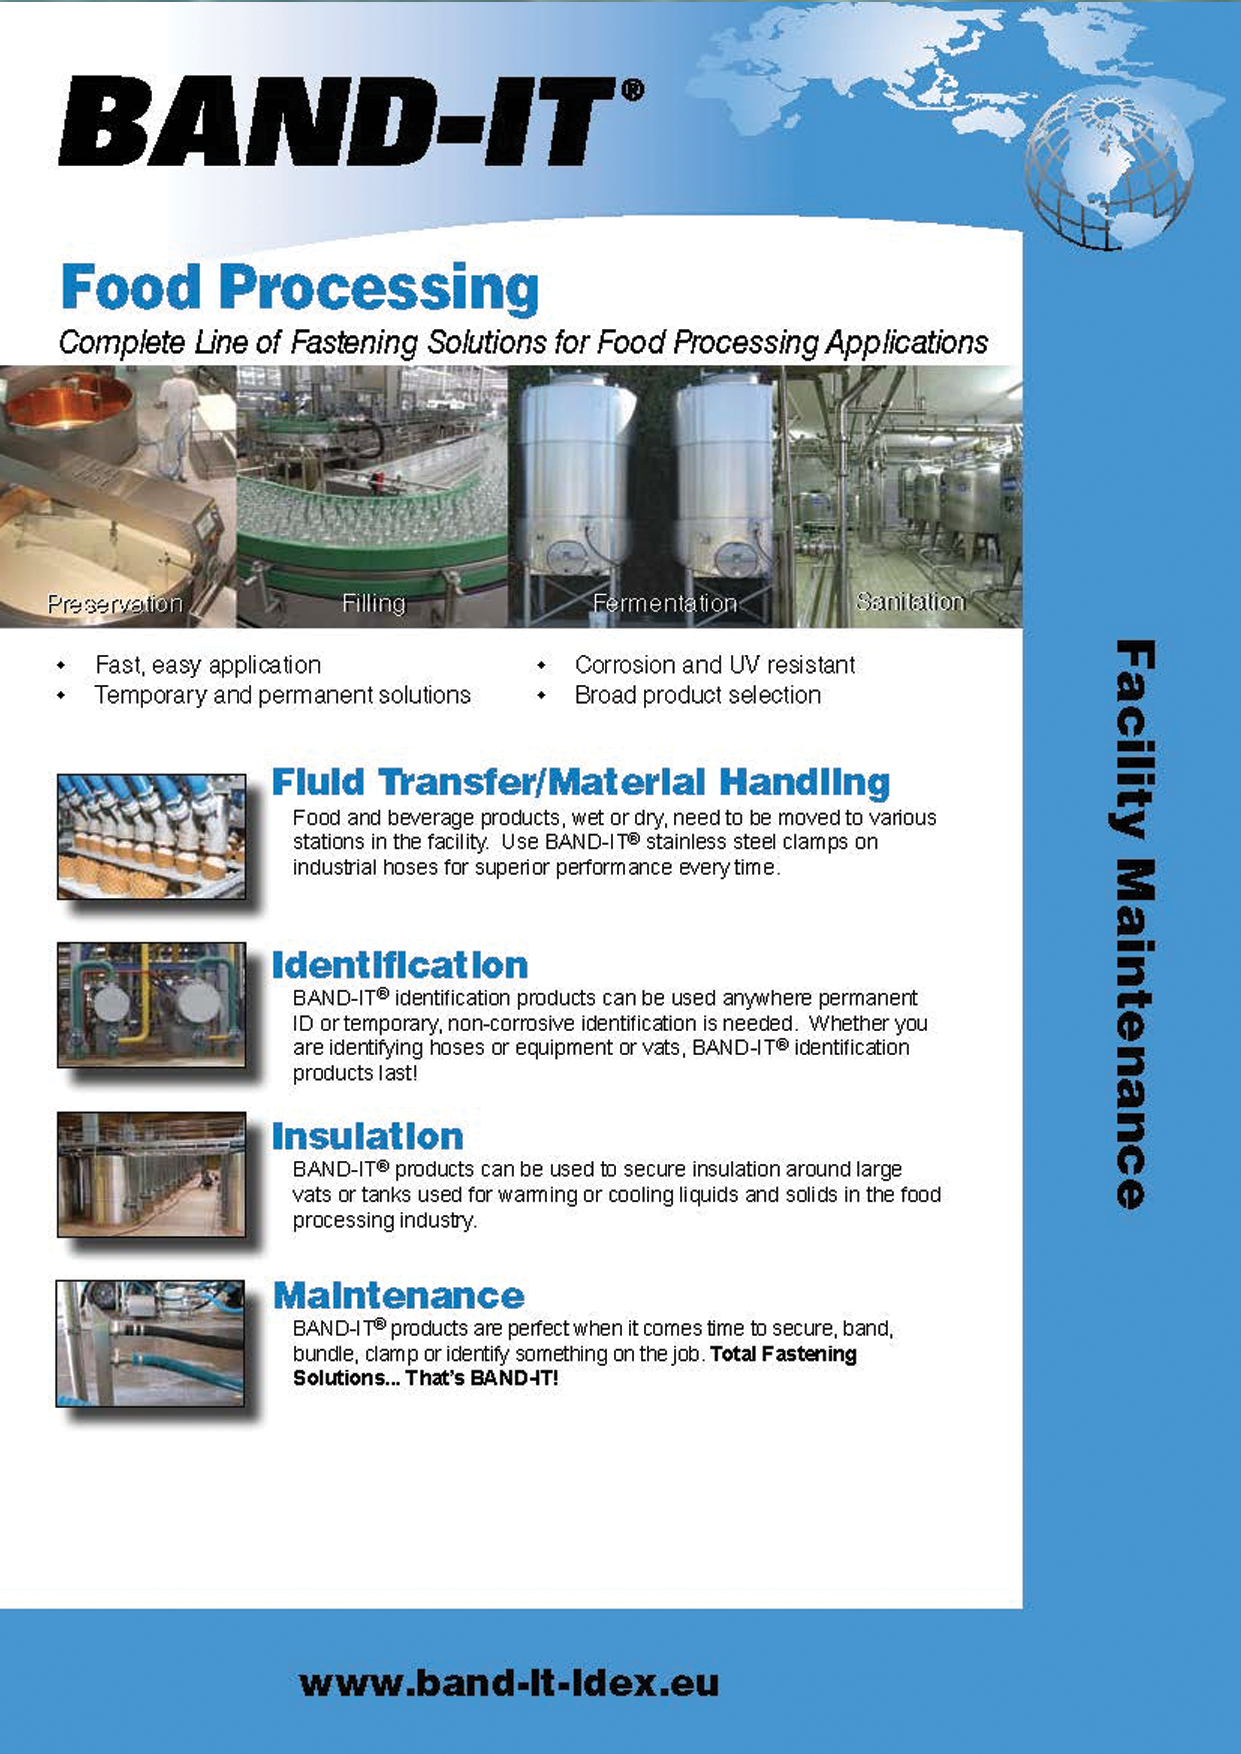 Food Processing - Complete Line of Fastening Solutions for Facility Maintenance Applications